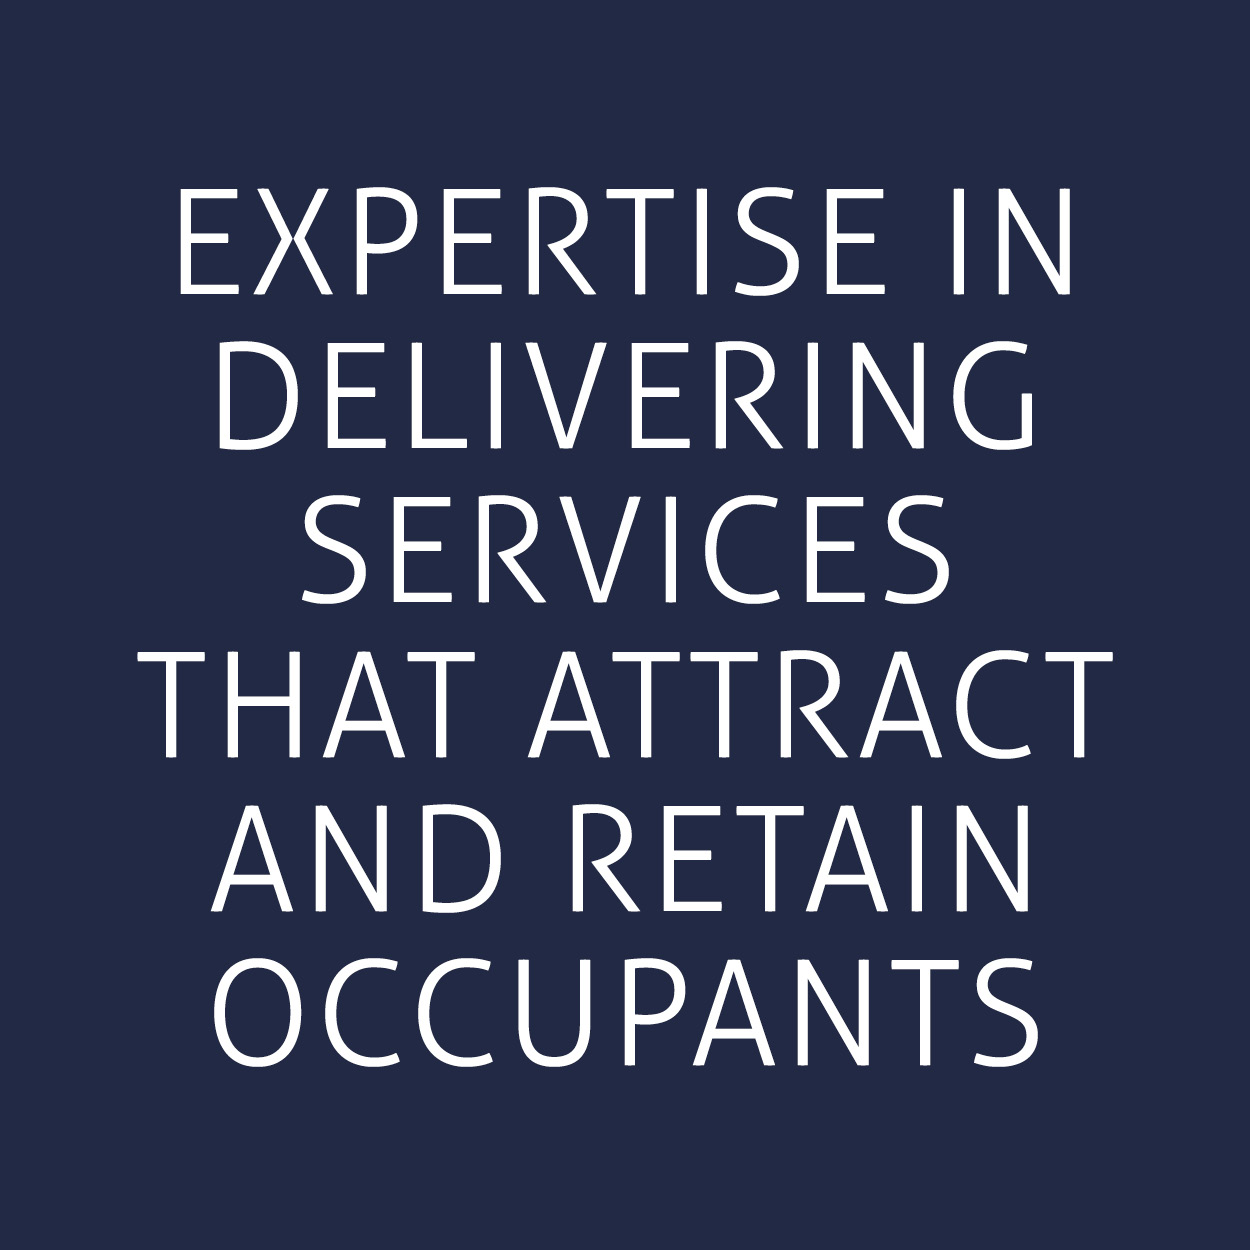 Expertise in delivery services that attract and retain occupants.